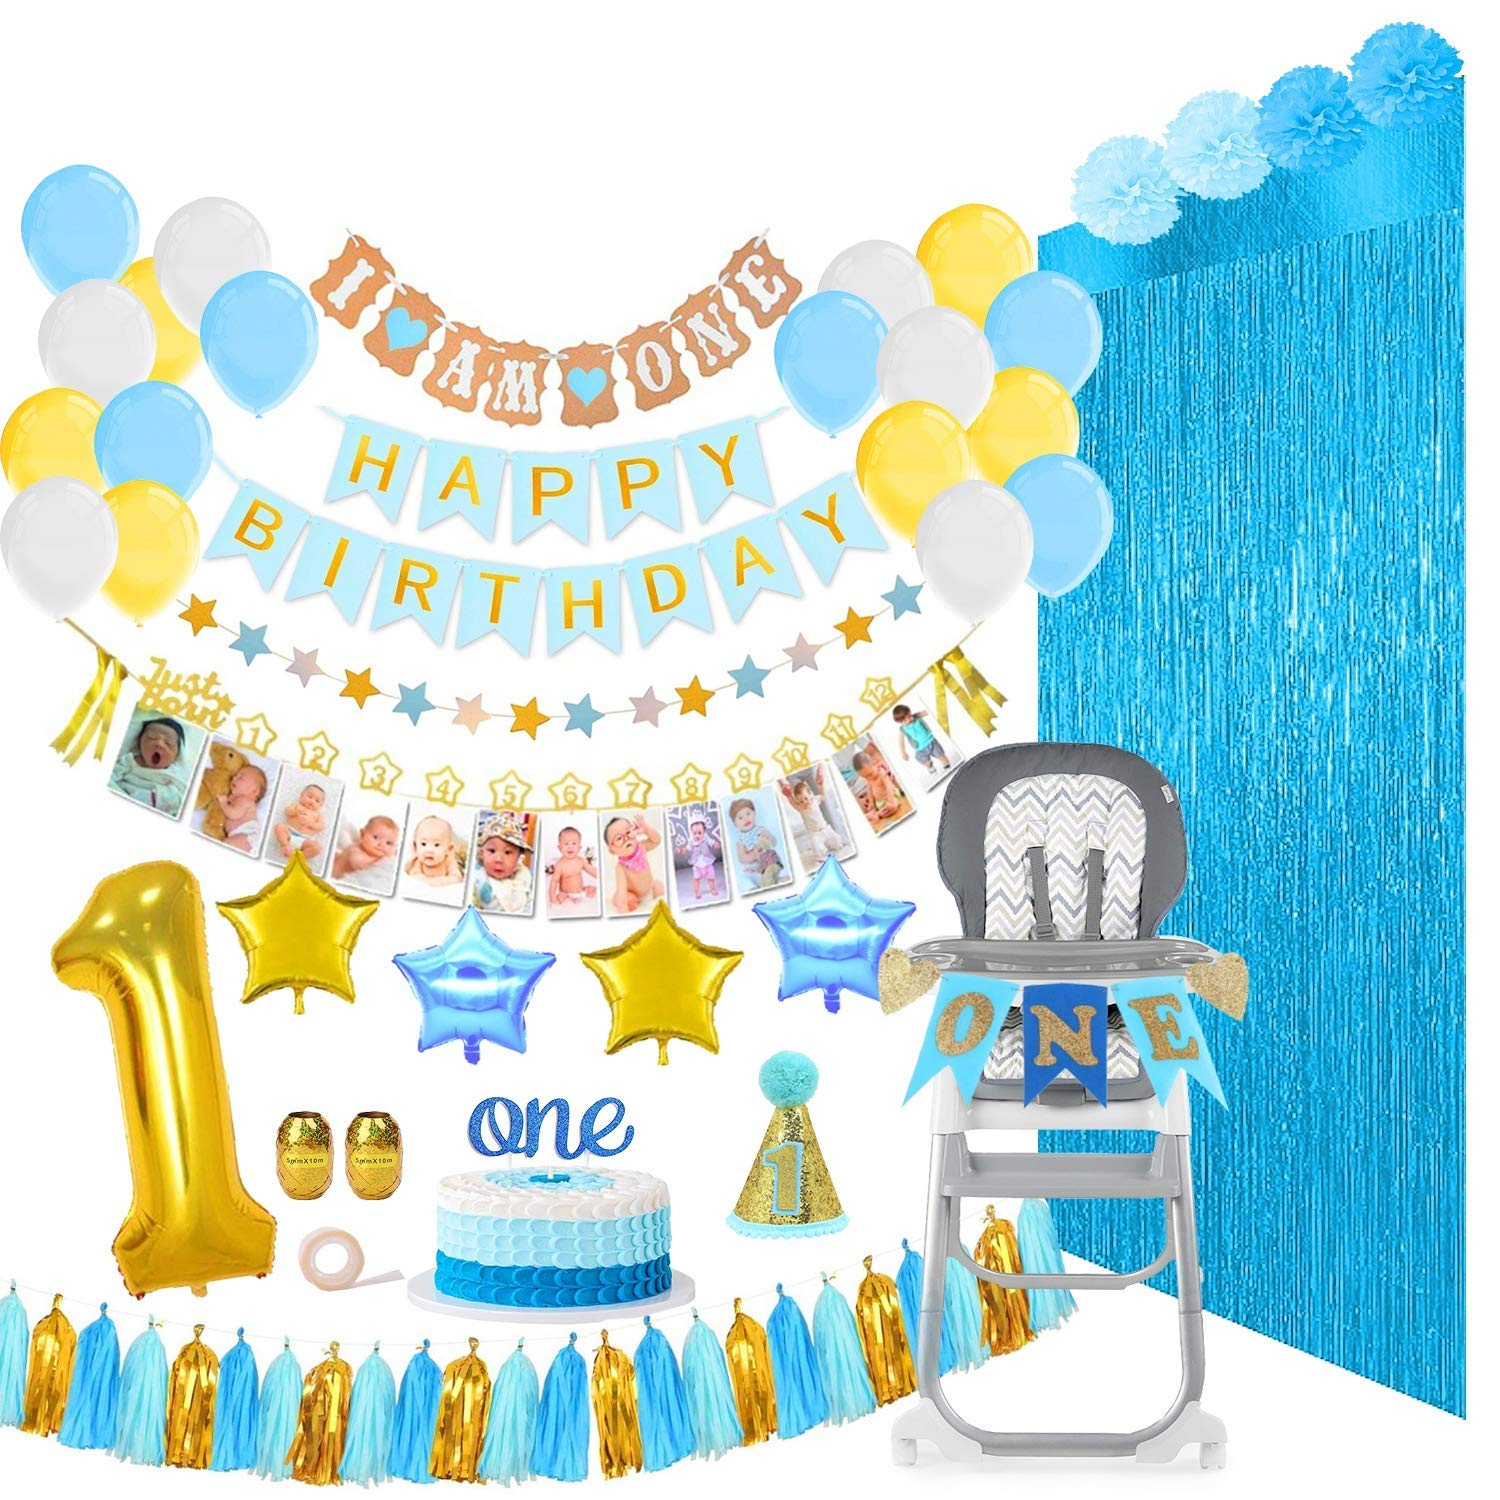 Baby Boy First Birthday Decorations & Party Supplies Mega Bundle [133 Pieces] | Includes Balloons, Banners, 12 Months Milestones, Garlands, Cake Topper, Pom Poms, Party Hat, Foil Fringe Backdrops, Gold Ribbons & Glue Dots & More | Blue, White, Gold | Boys